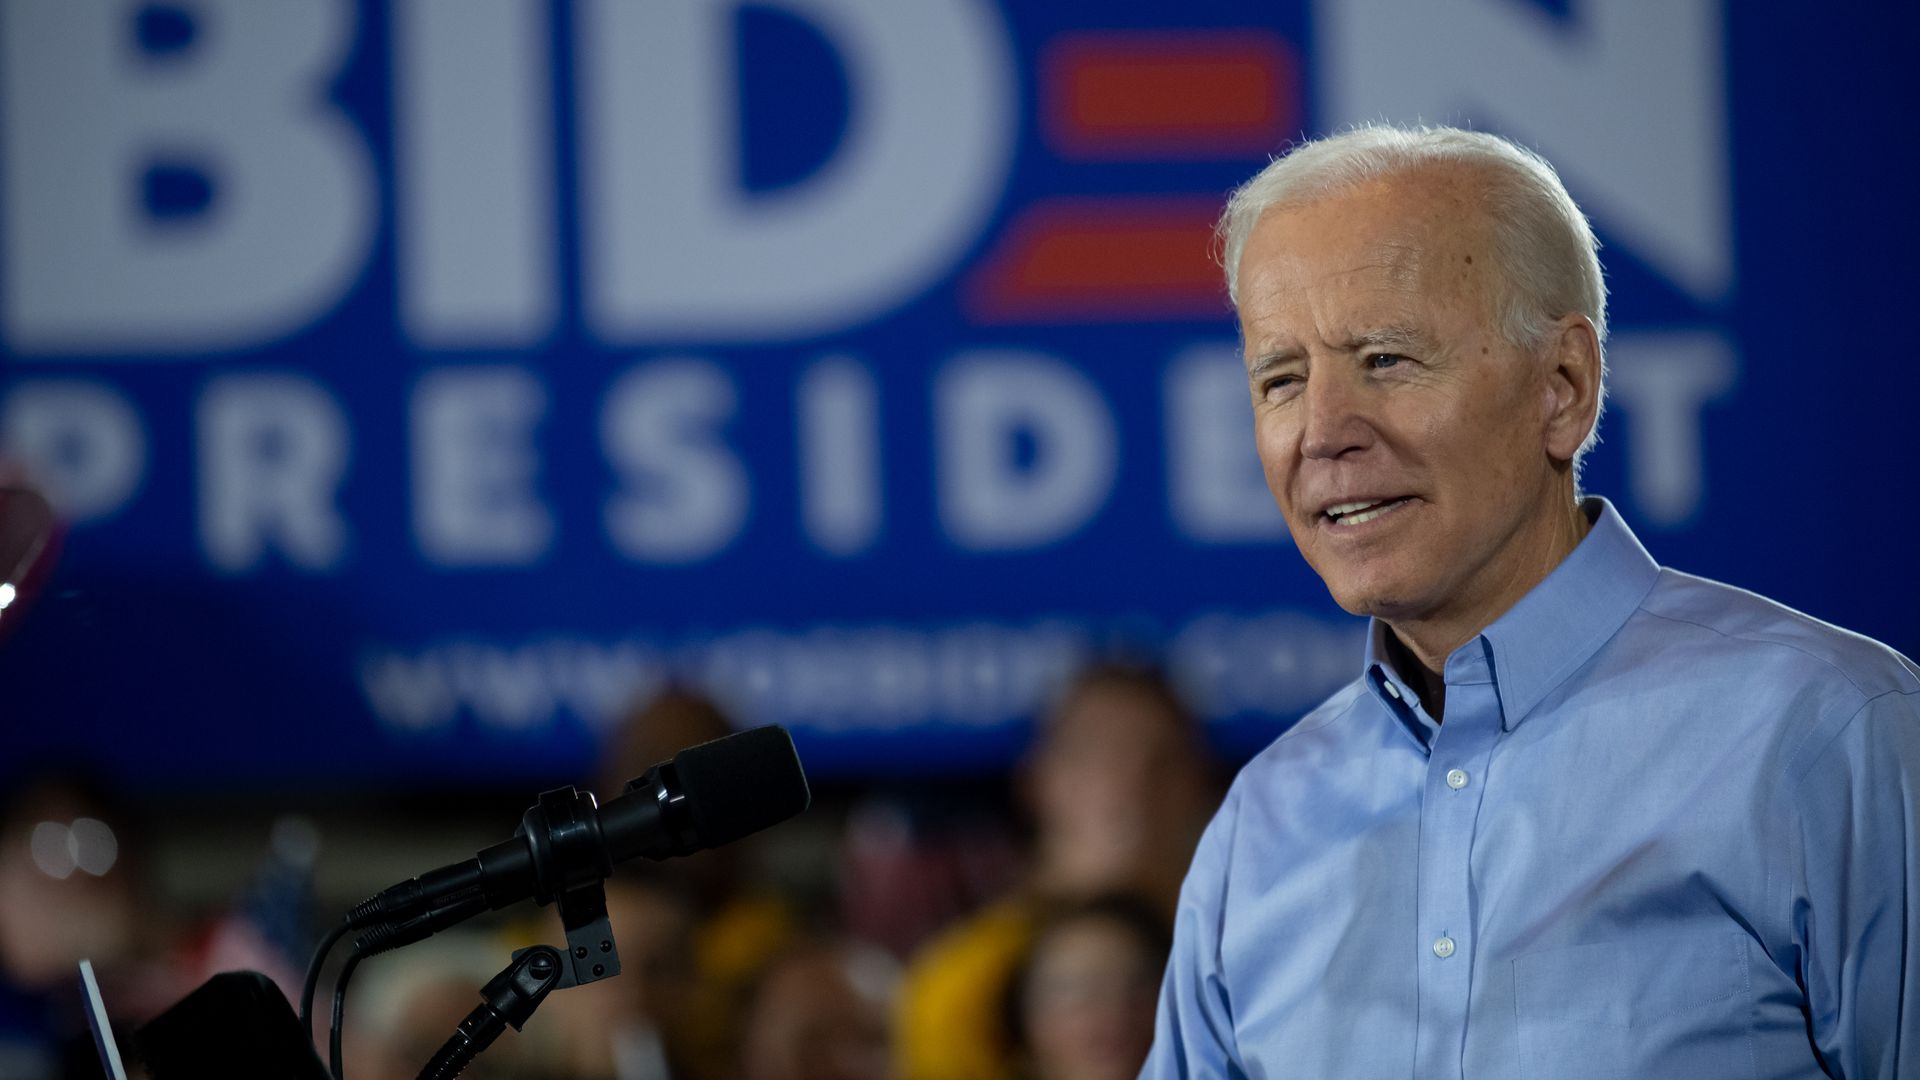 The Biden bump: 3 new polls show former VP extend lead over 2020 field